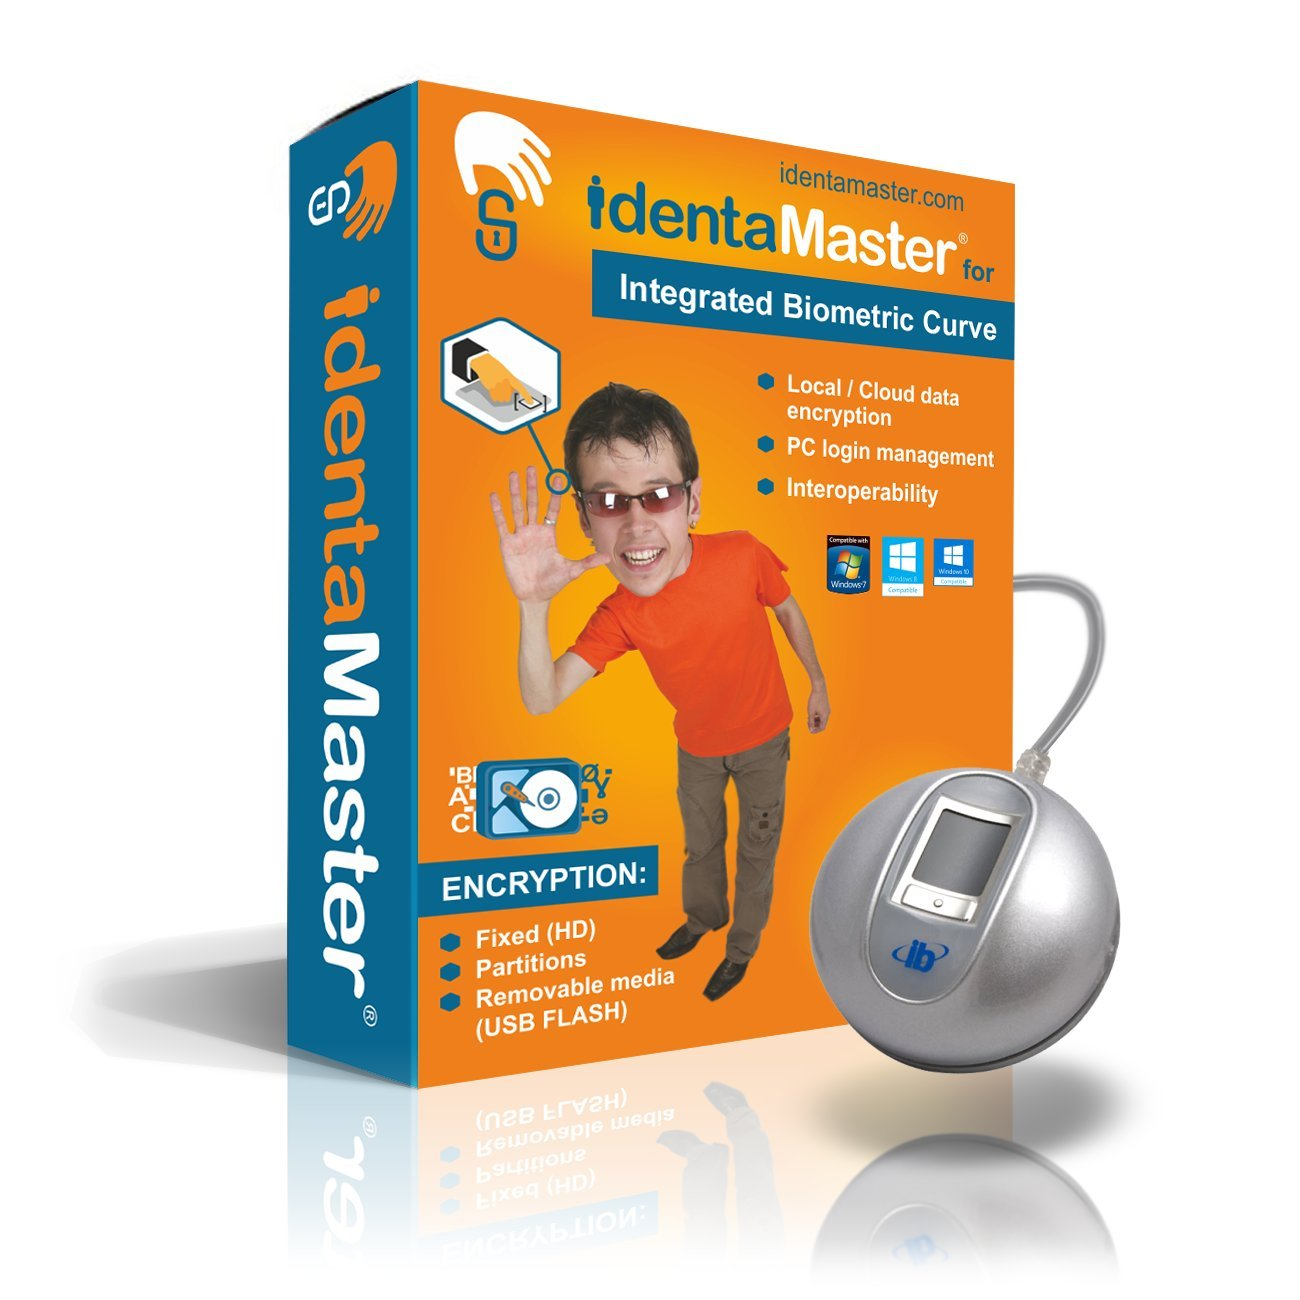 IdentaMaster Biometric Security Bundle with Integrated Biometrics The Curve - Software Included Encryption, Login for Windows 7/8/10 by IdentaZone